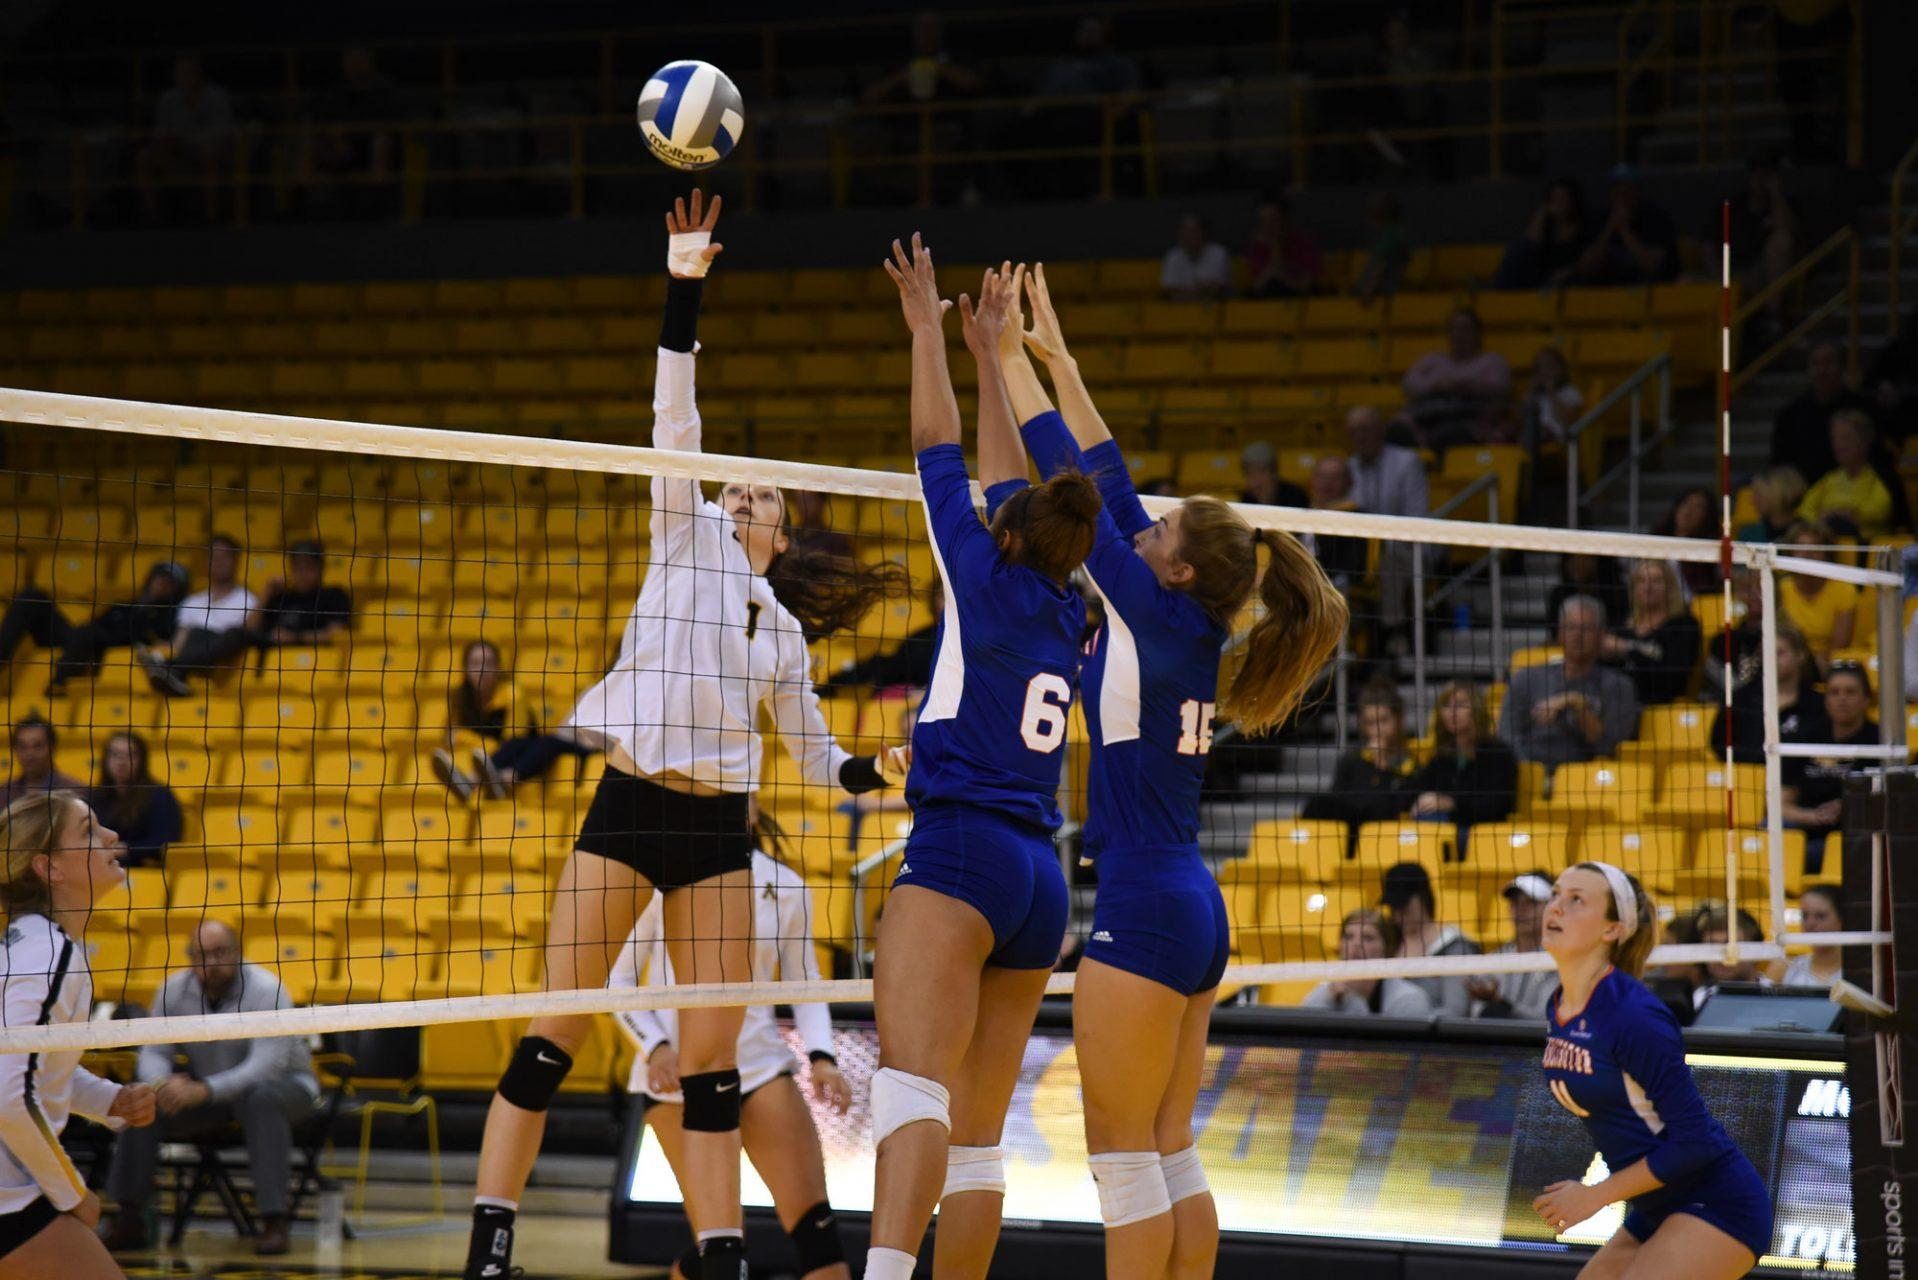 Senior middle blocker Courtney Sullivan tips the ball during the game on Sunday against UT Arlington.